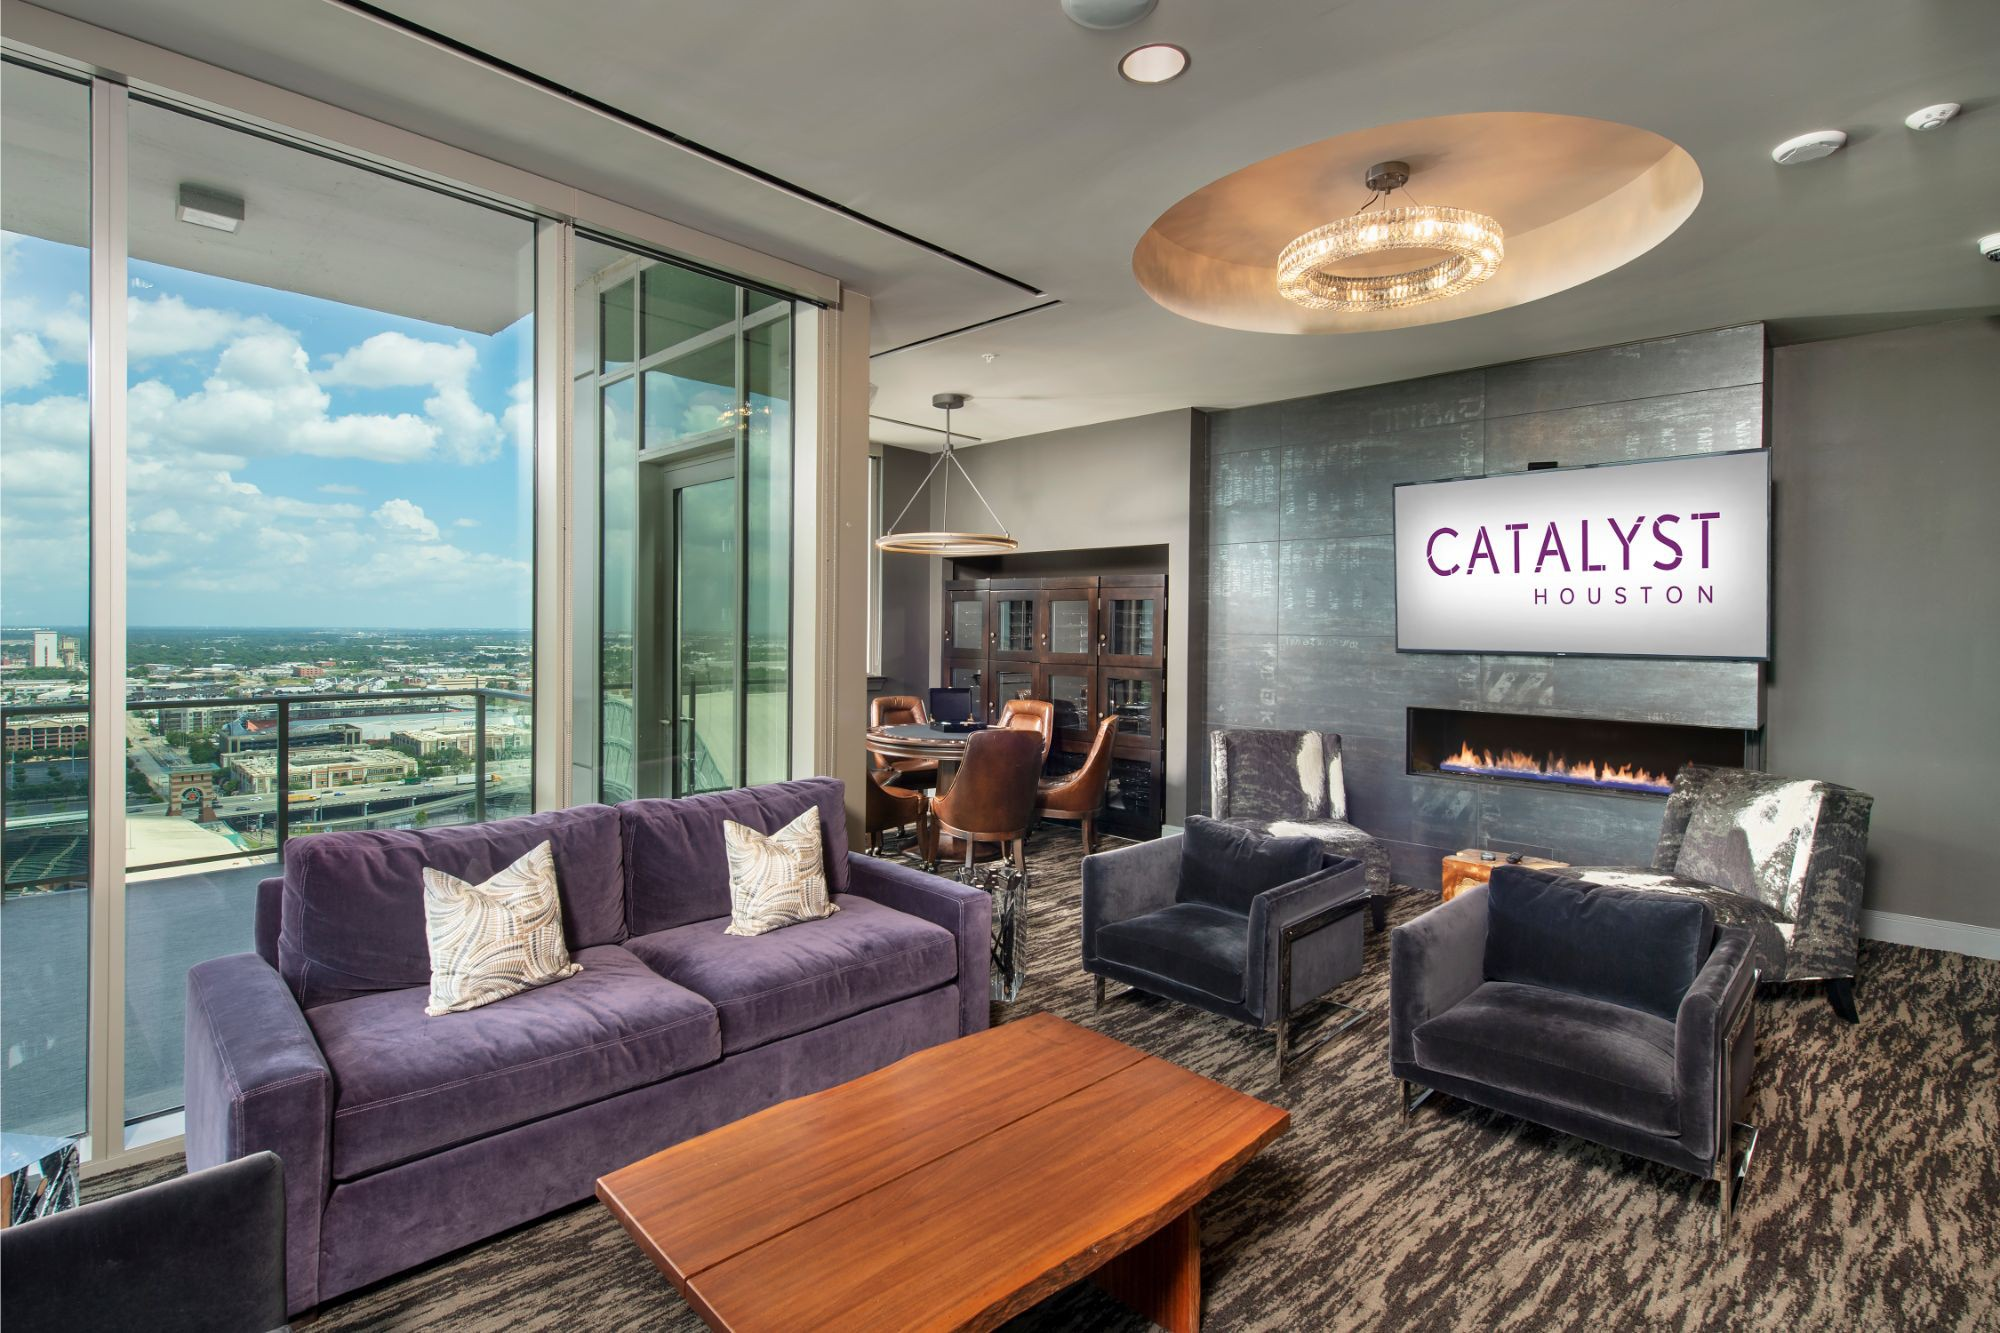 Catalyst Houston